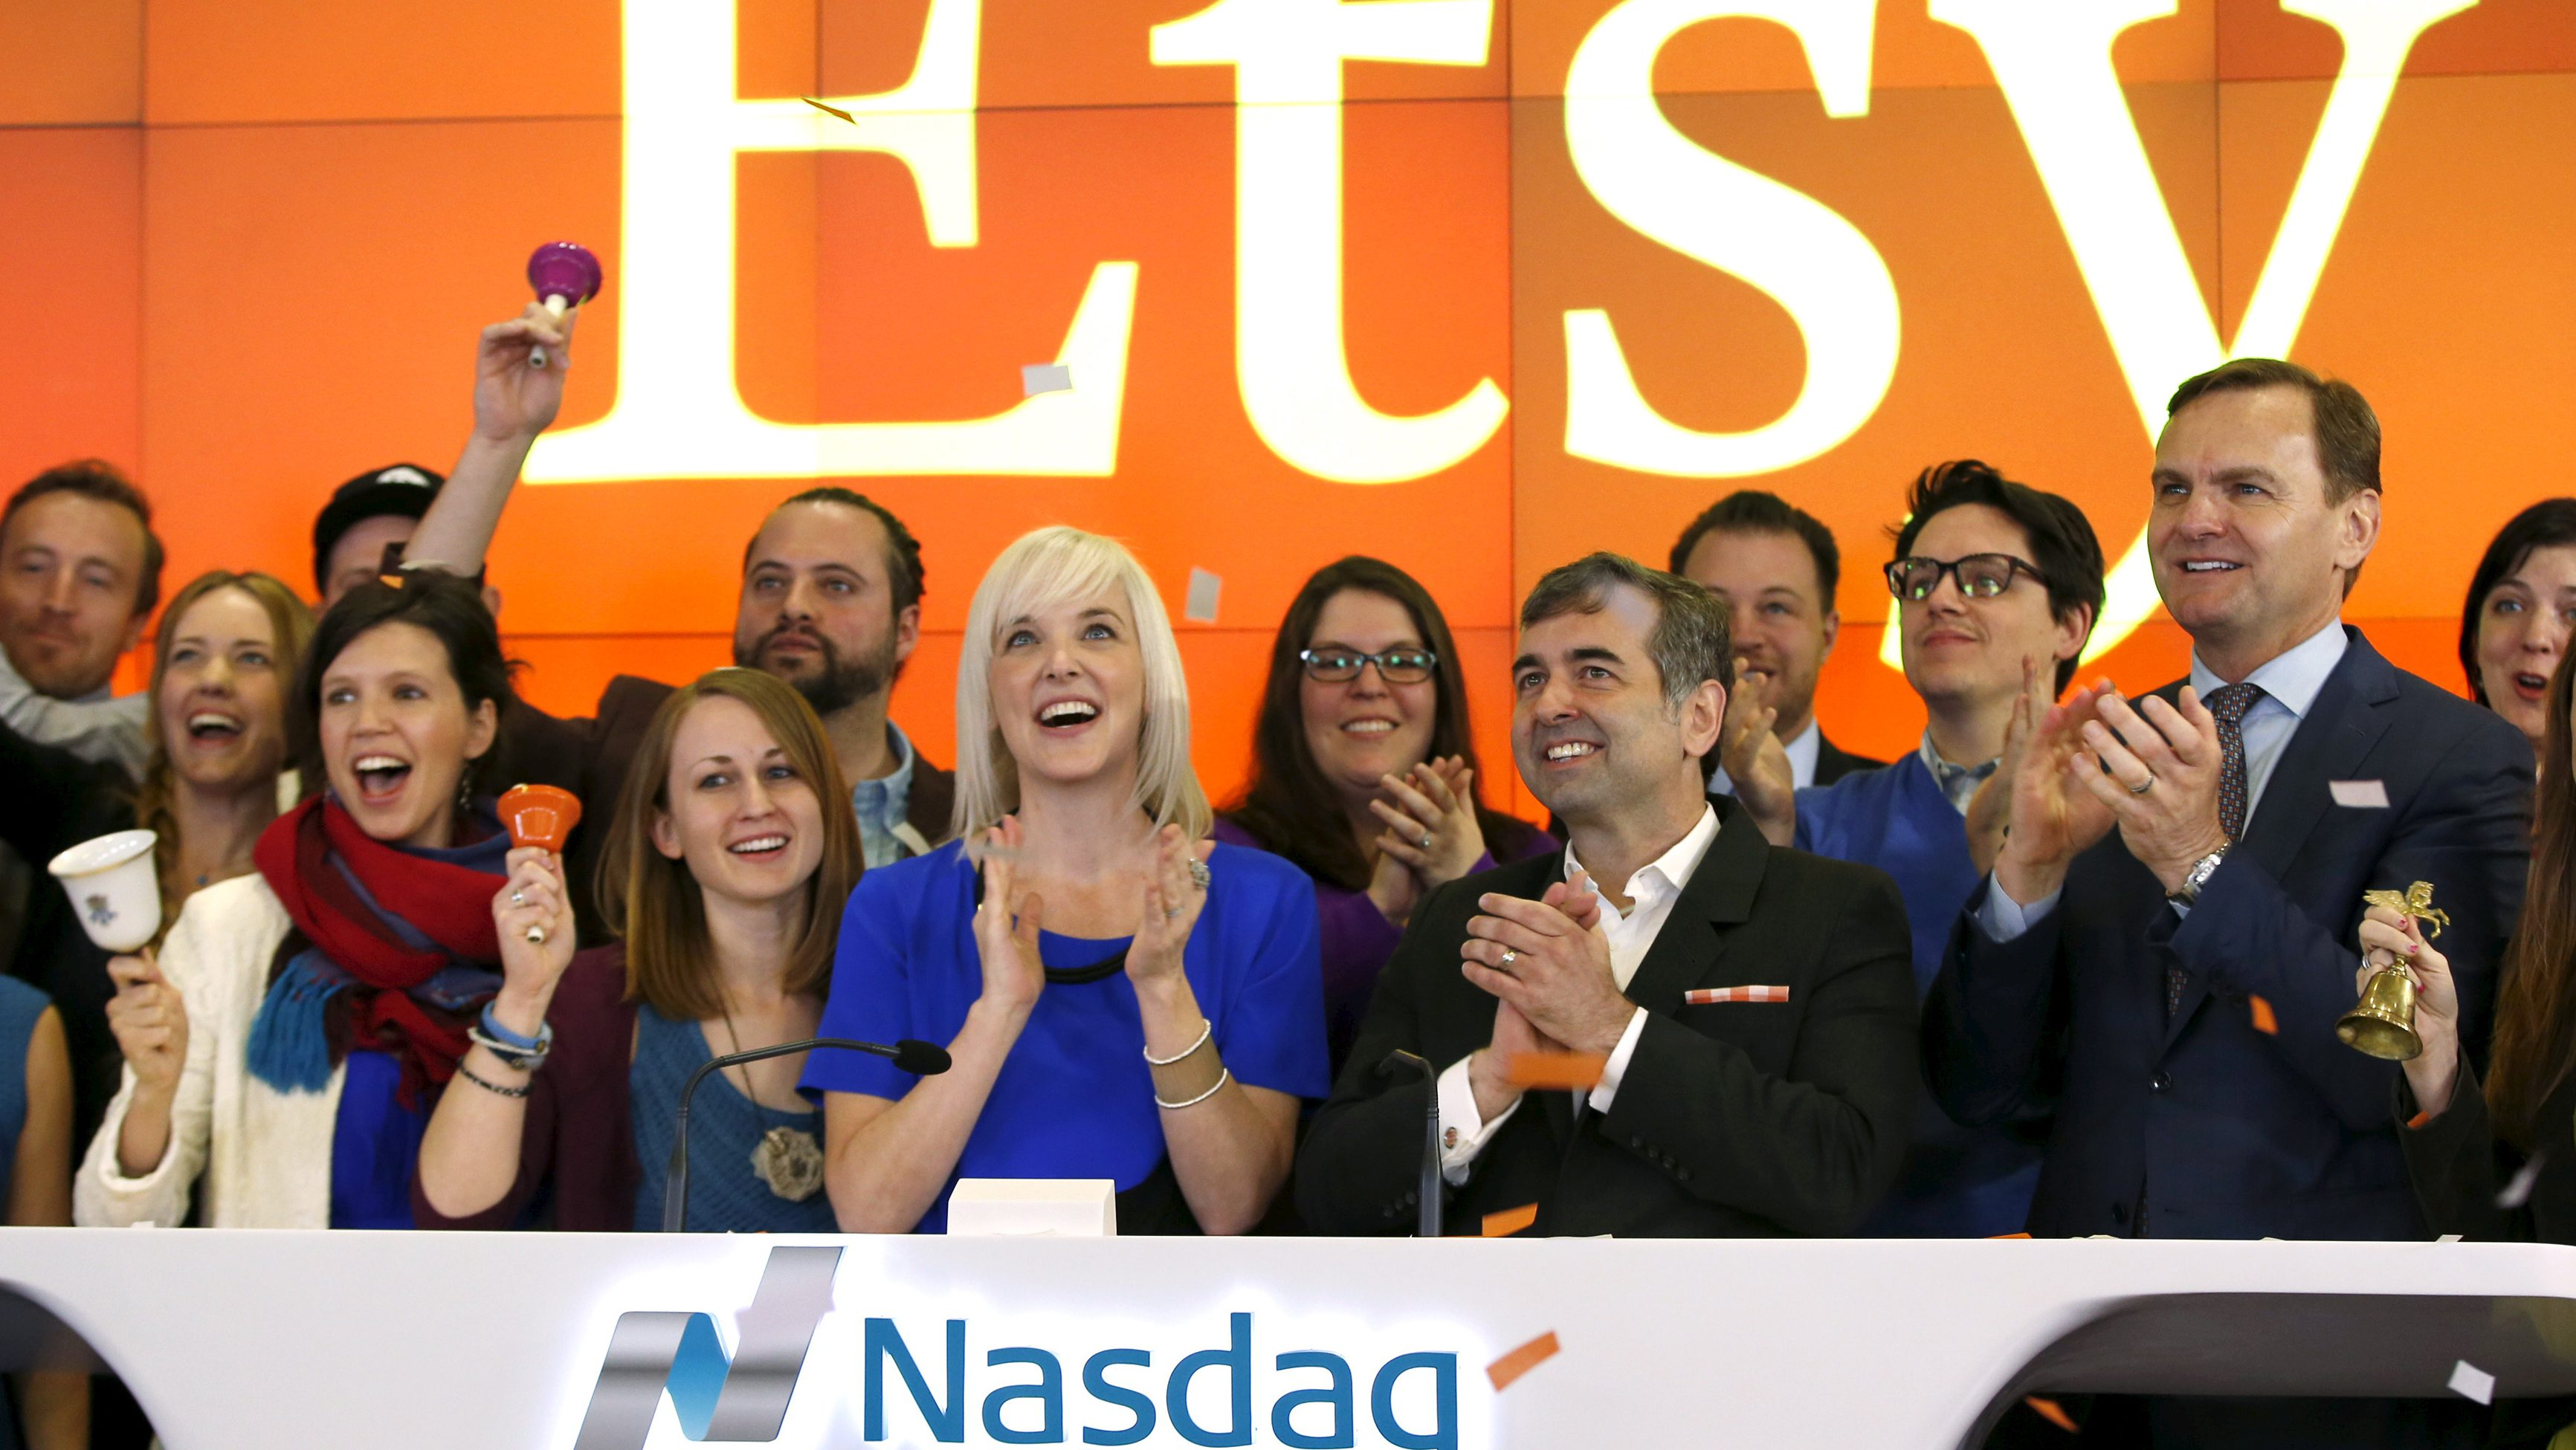 Etsy Inc's Chief Executive Officer Chad Dickerson (2nd from R) and Chief Financial Officer Kristina Salen (C) stand with Etsy Employees and Nasdaq Executive Vice President Bruce Aust (R) as they celebrate Etsy's initial public offering (IPO) at the Nasdaq market site in New York April 16, 2015. Etsy's initial public offering has been priced at $16 per share, a market source told Reuters, valuing the online seller of handmade goods and craft supplies at about $1.78 billion.